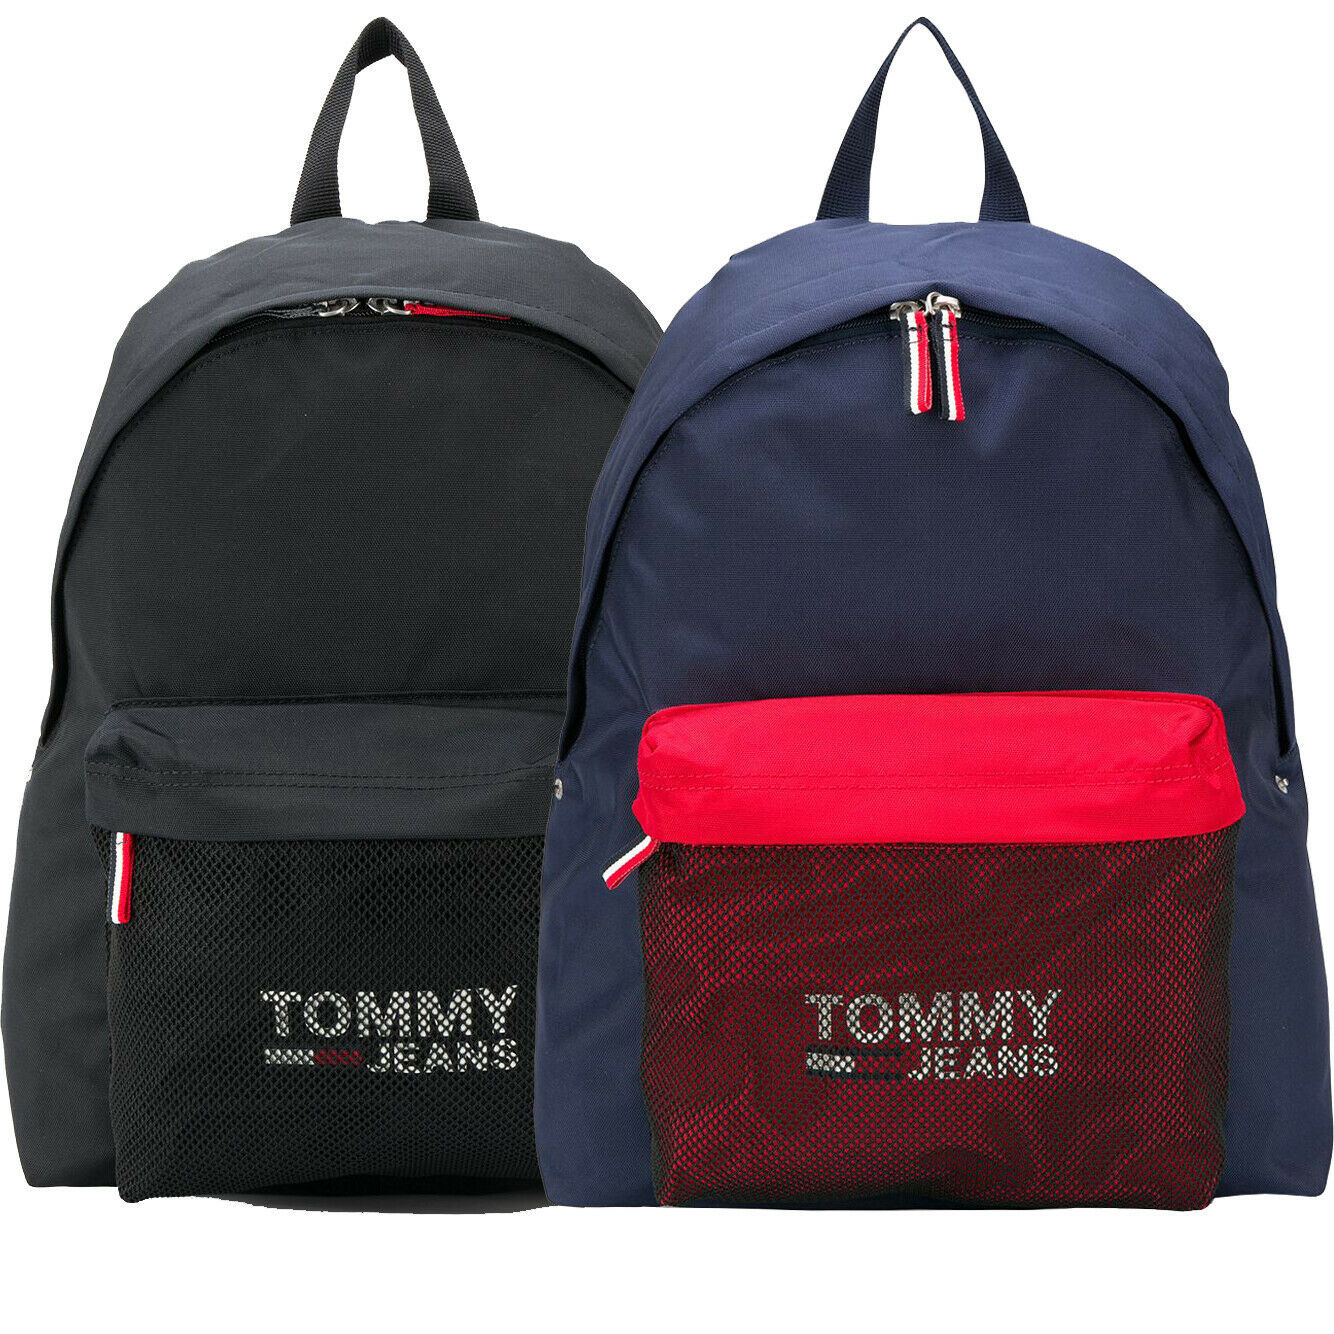 Tommy Jeans Cool City Logo Print Mesh Pocket School Shoulder Book Bag Backpack